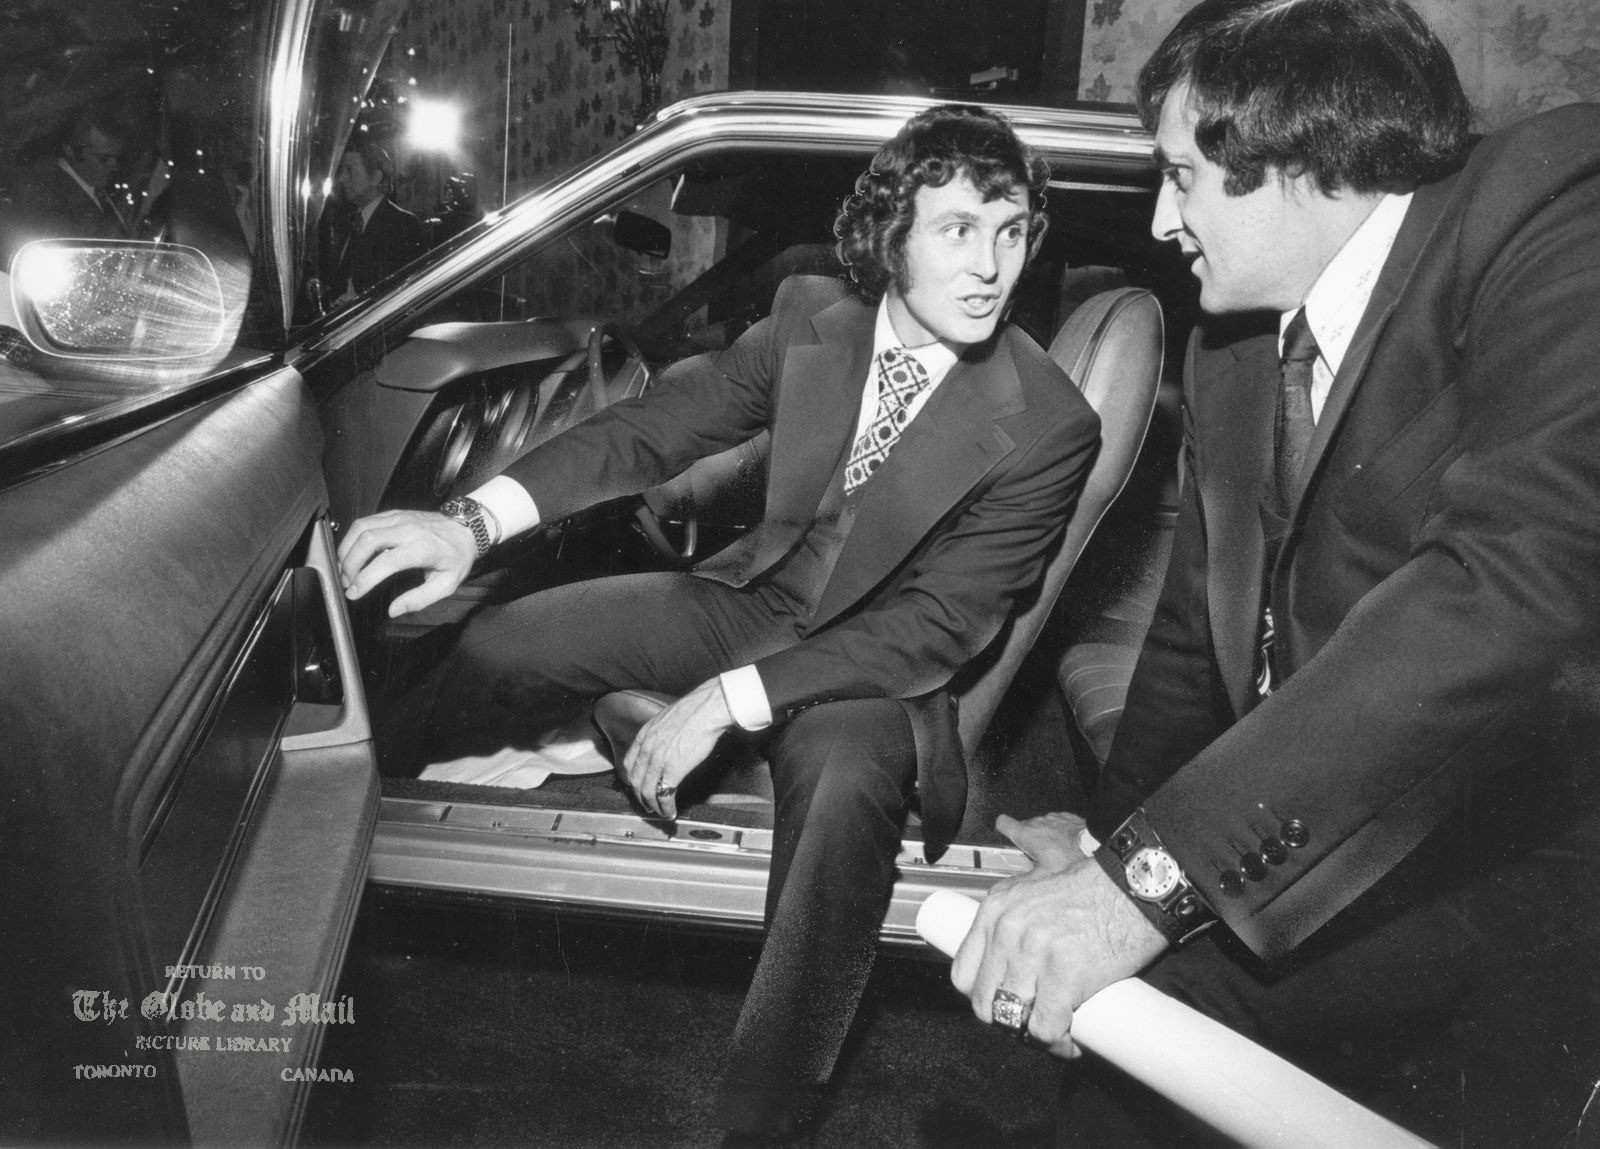 OCTOBER 27, 1972 -- TORONTO -- TEAM CANADA HEROES -- Hero of Game 8 of the Canada-Russia Summit Series, Paul Henderson, left, and teammate, Phil Esposito get sneak preview of cars they won as most popular Team Canada players. Photo by Erik Christensen / The Globe and Mail Originally published October 28, 1972